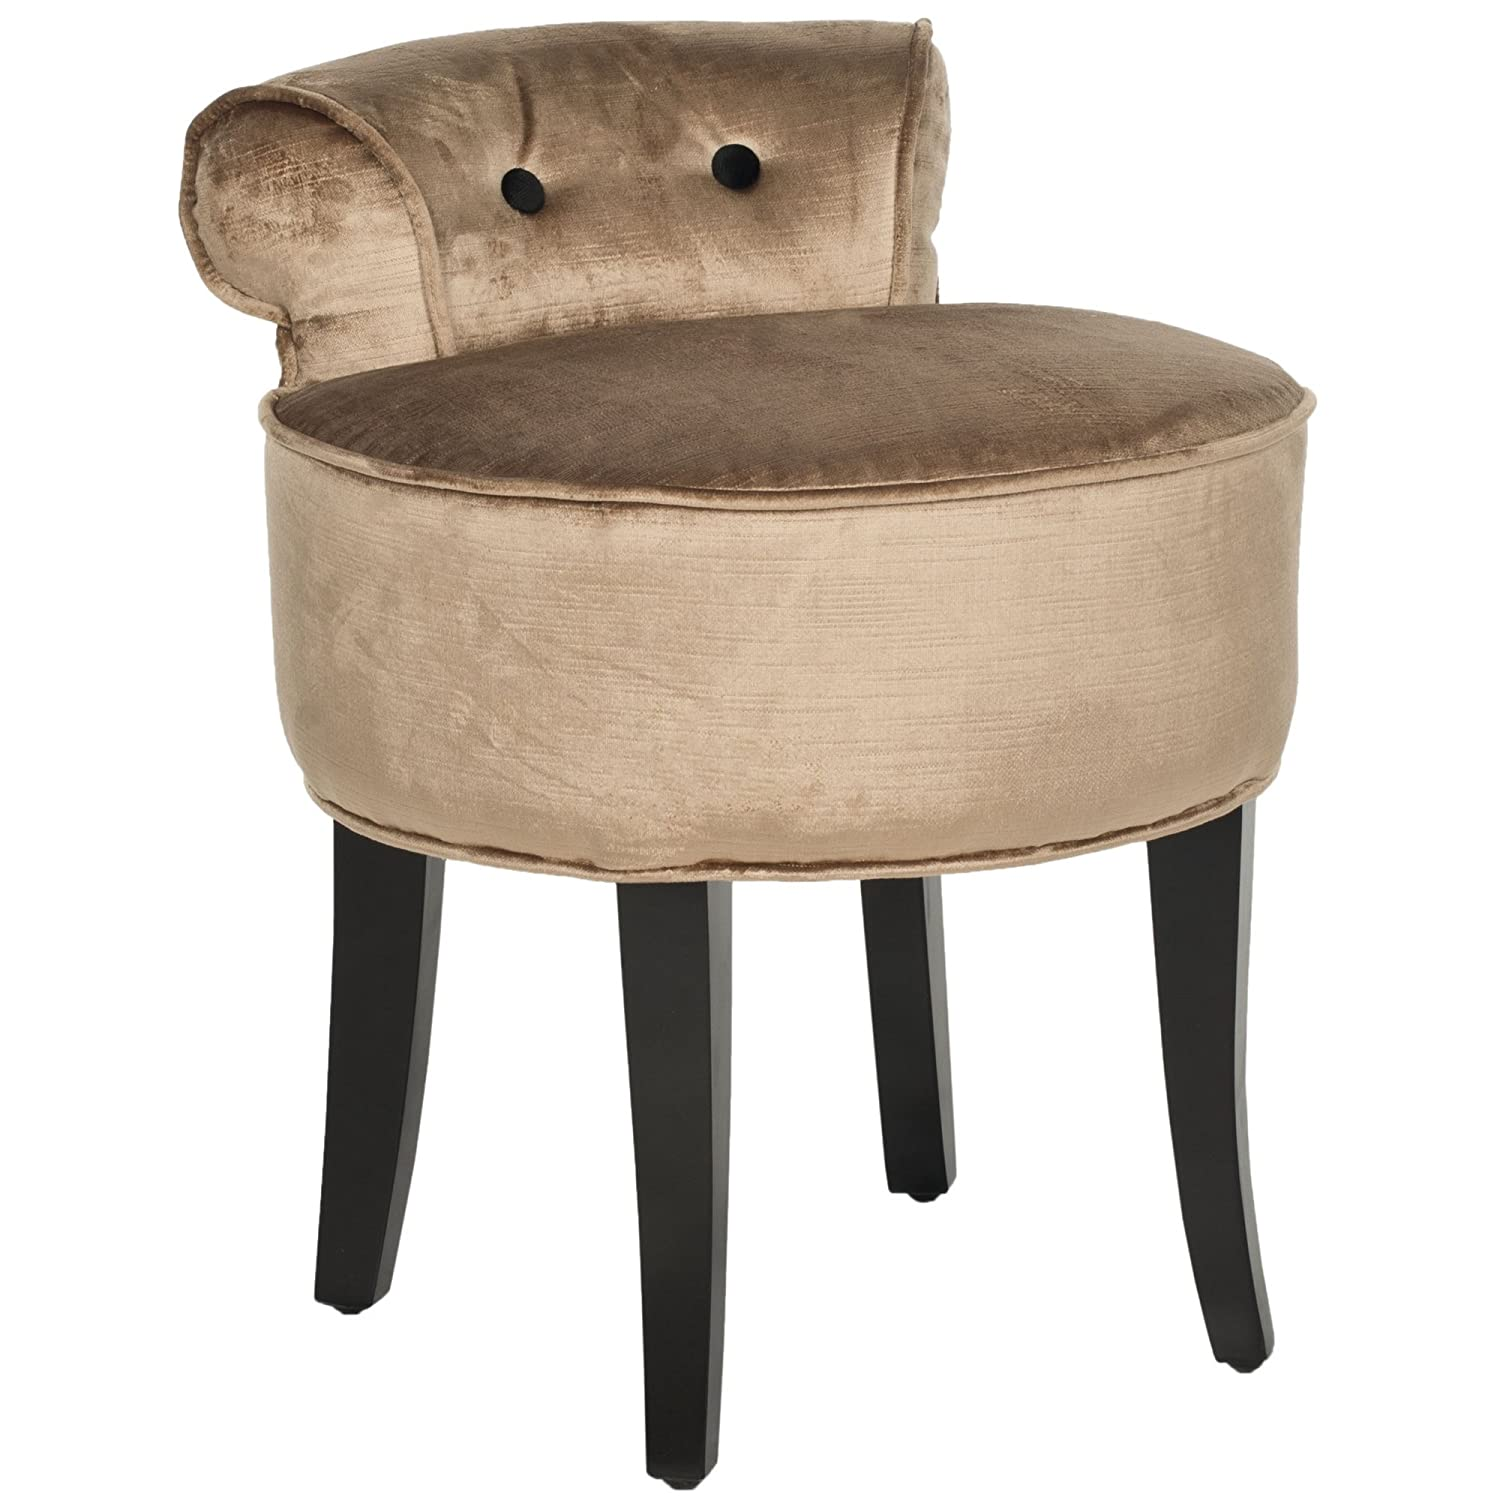 Amazon.com: Safavieh Mercer Collection Georgia Vanity Stool, Mink Brown:  Kitchen U0026 Dining